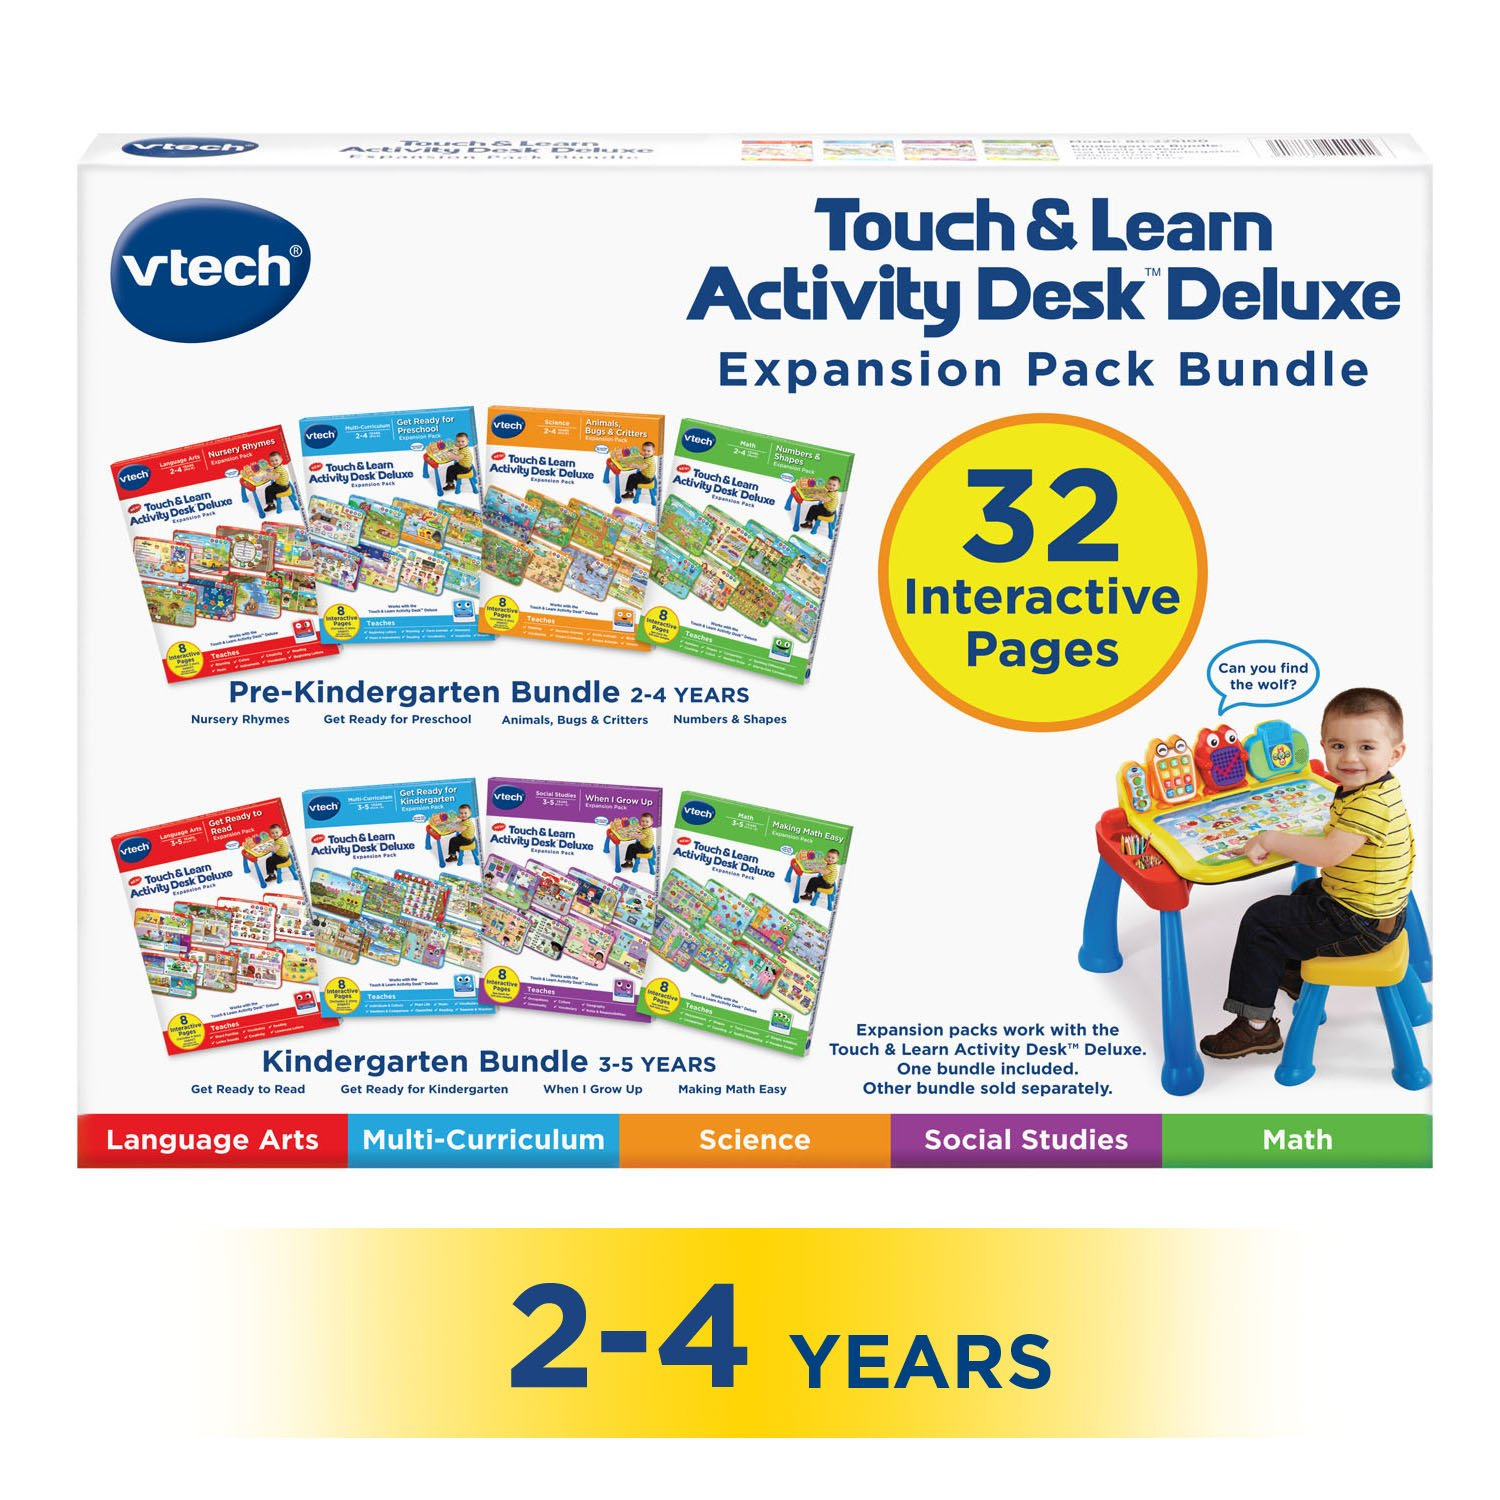 VTech Touch & Learn Activity Desk Deluxe 4-in-1 Preschool Bundle Expansion Pack I for Age 2-4